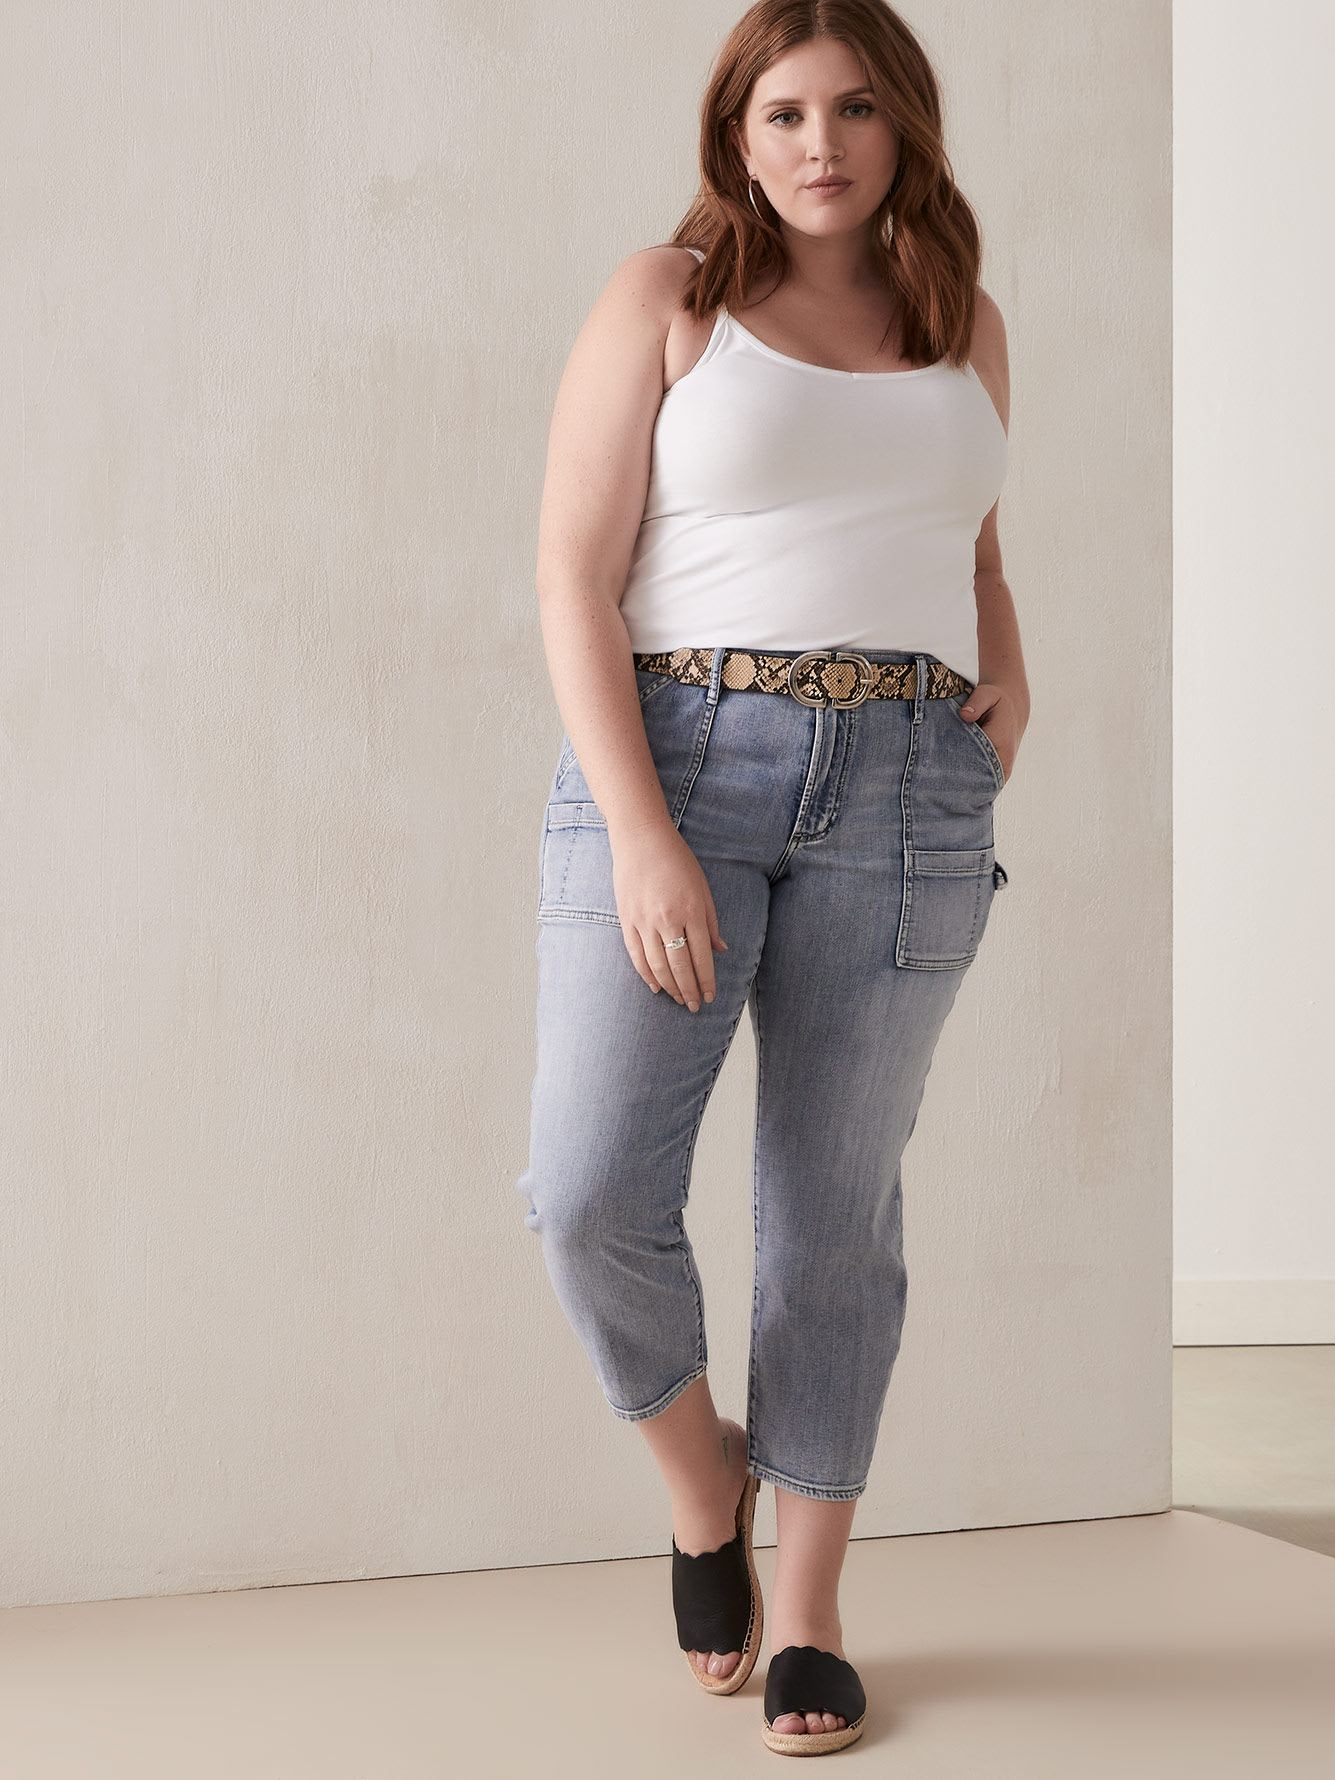 Light Wash Carpenter Jean - Silver Jeans